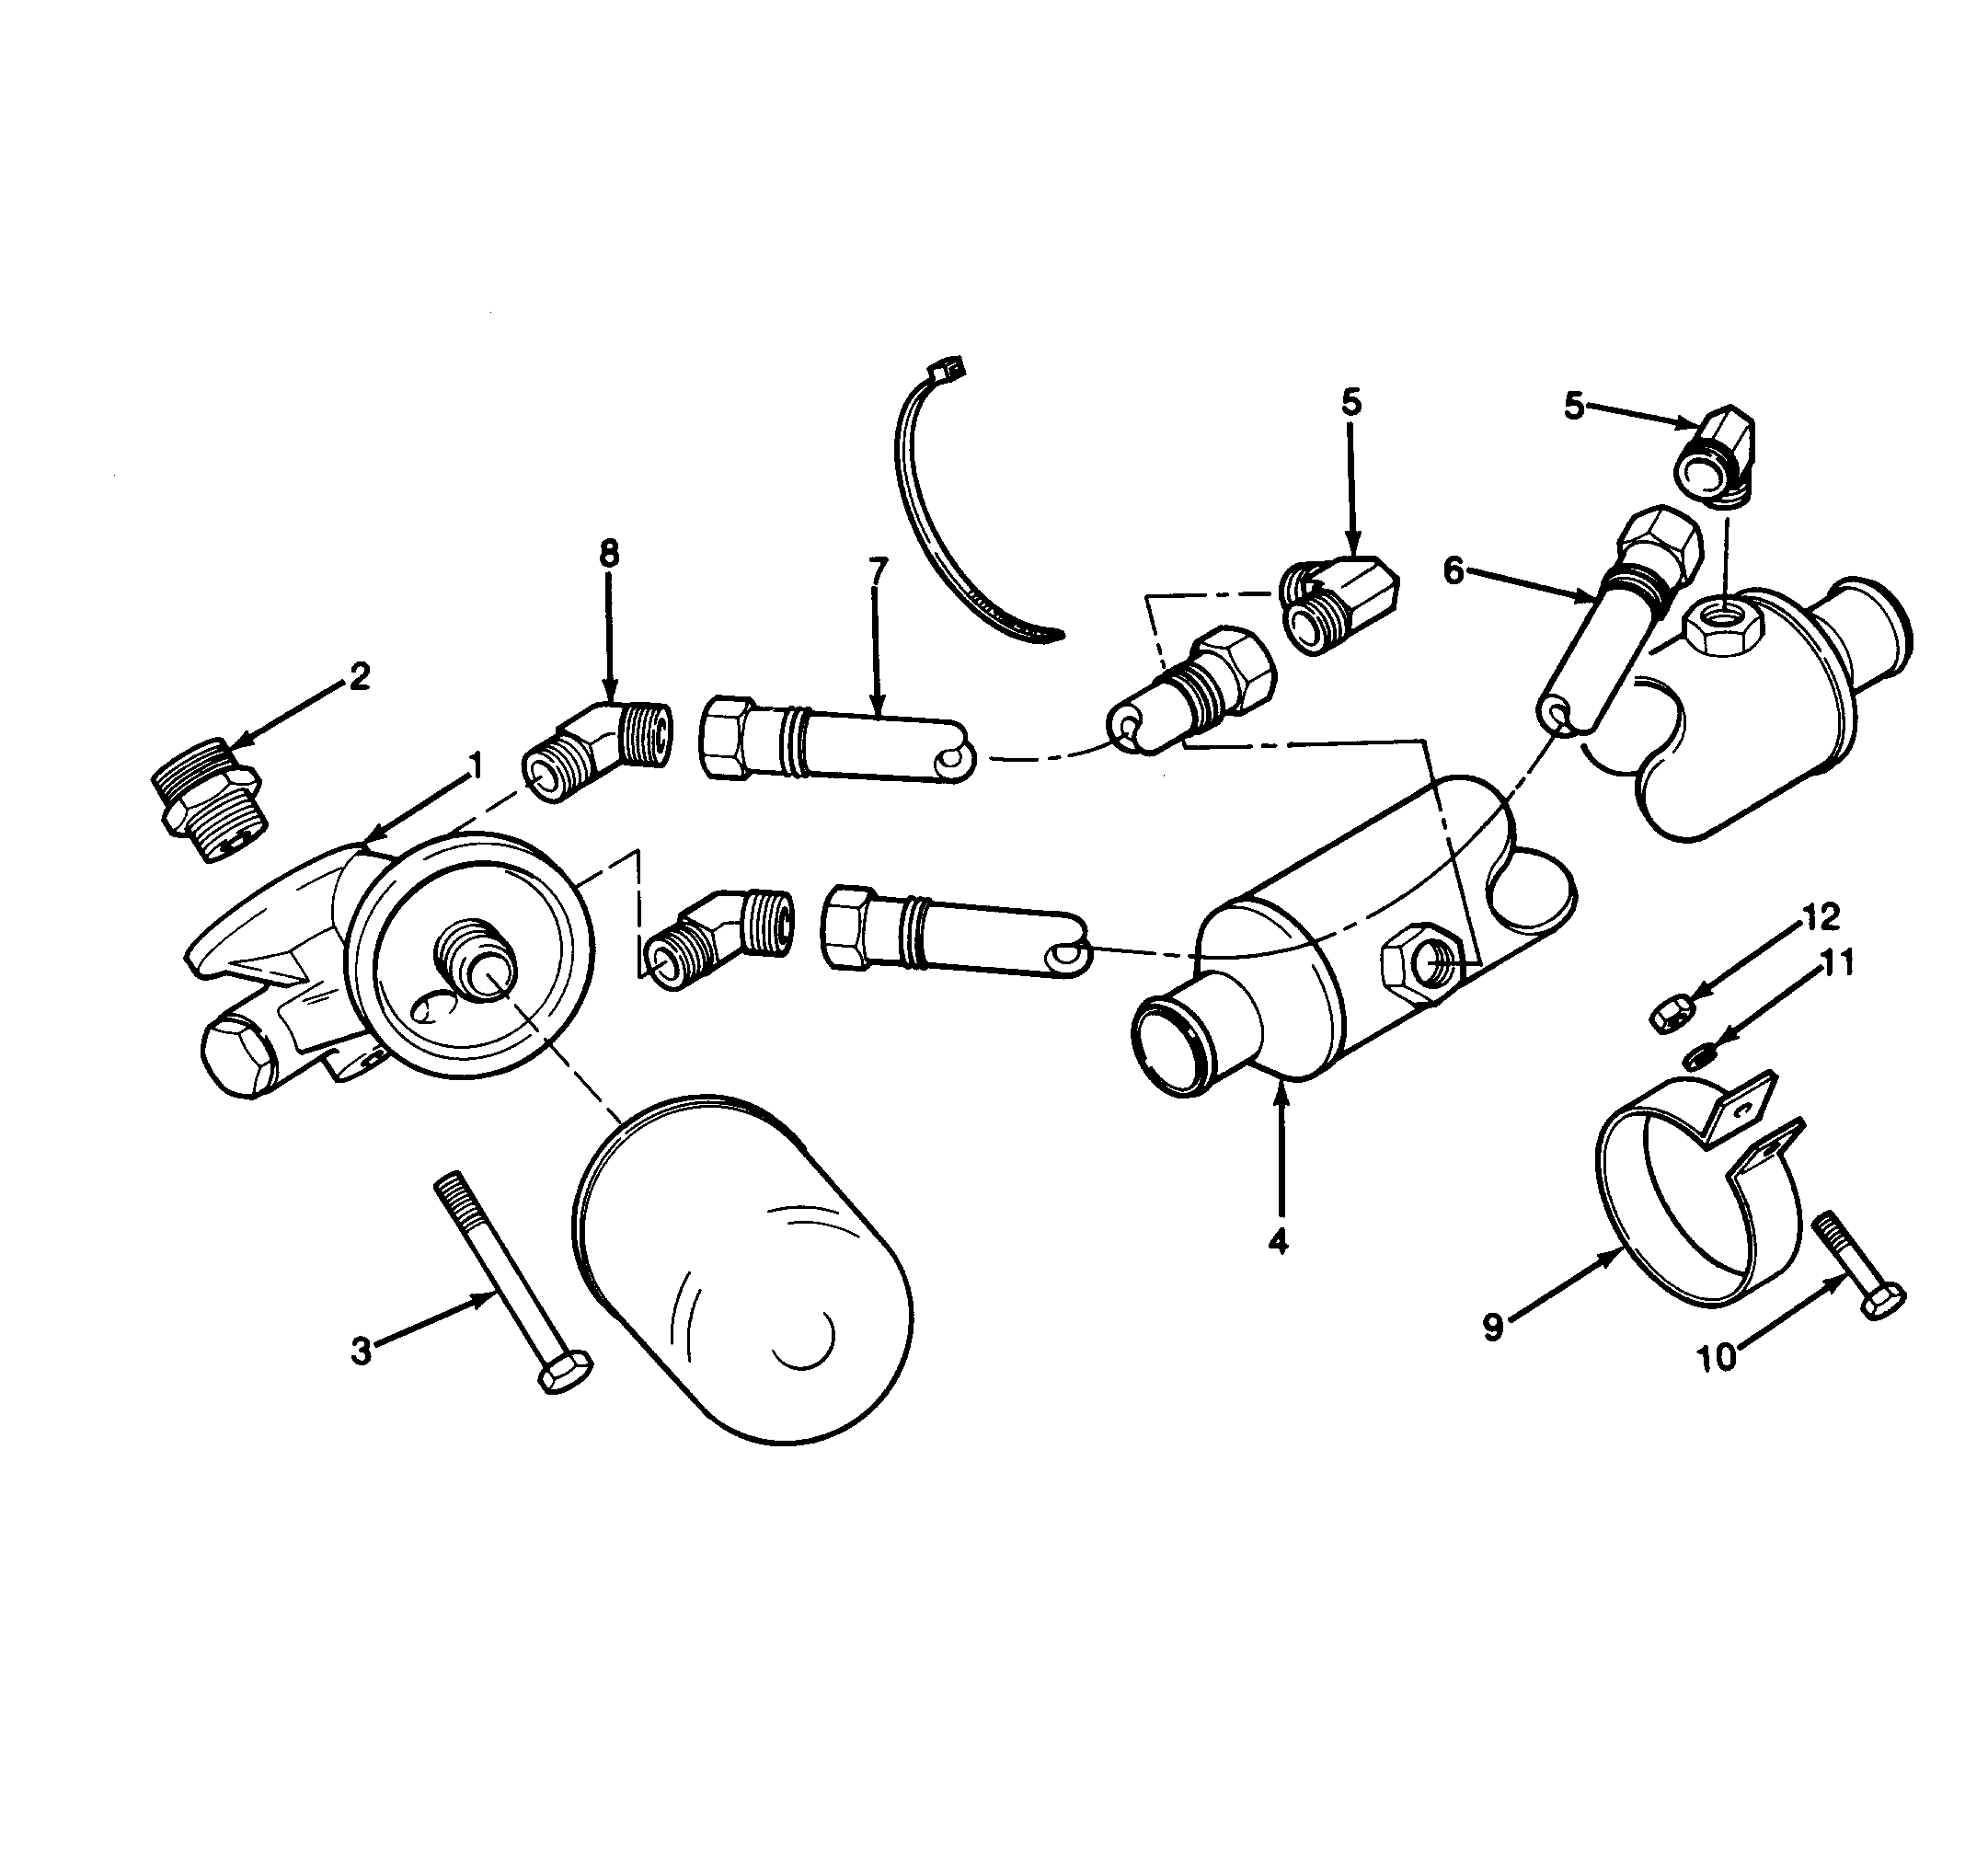 460 Engine Parts Diagram Labeled